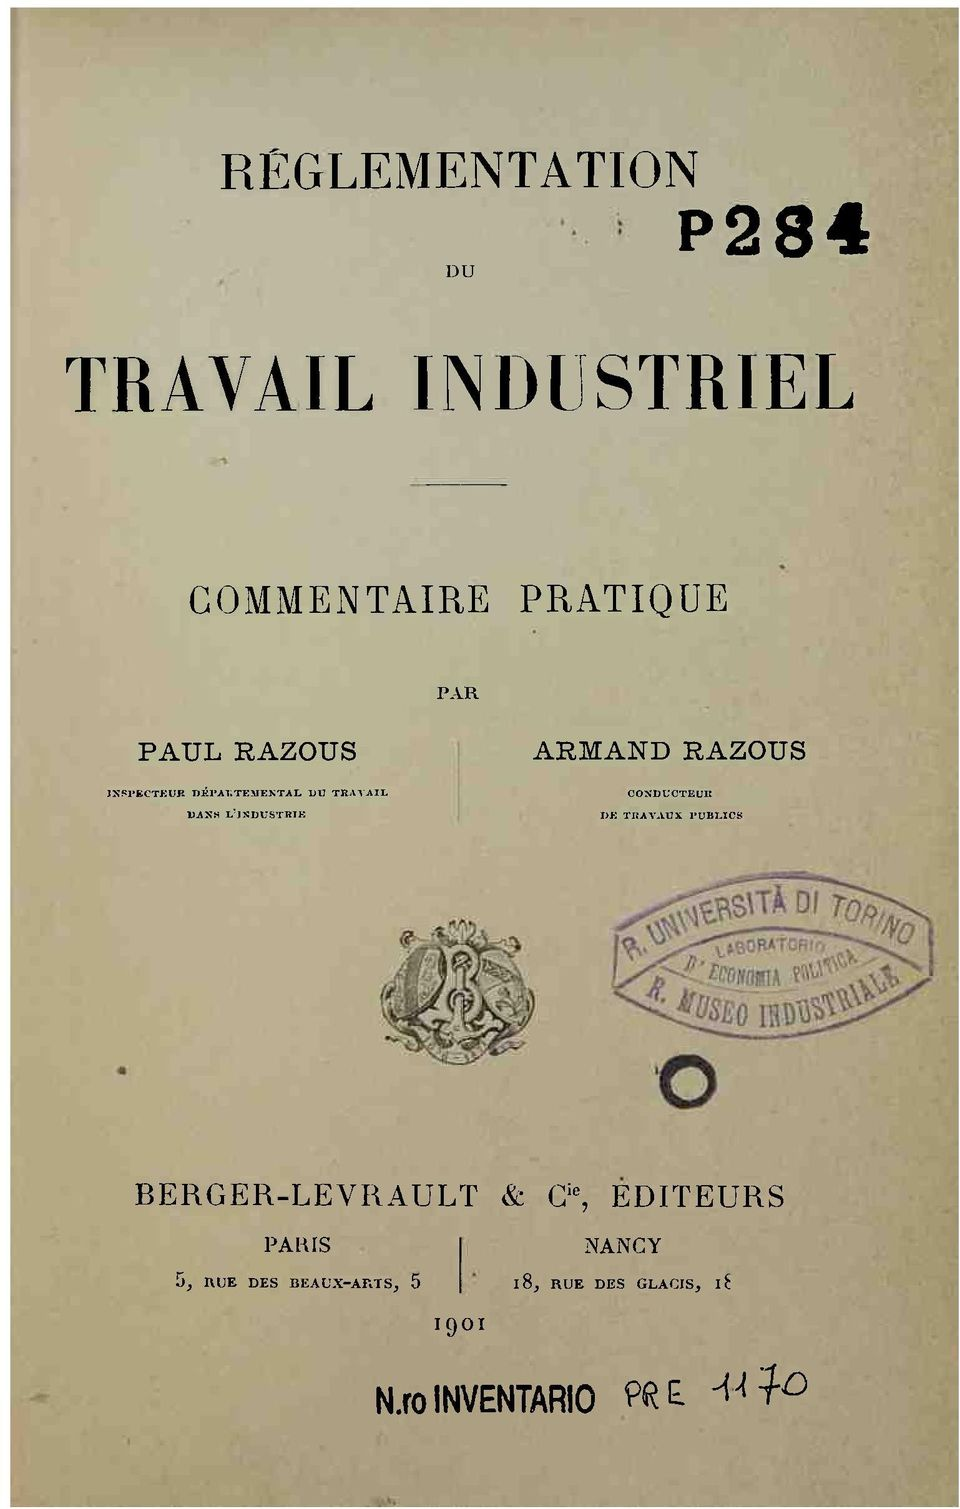 CONDUCTEUR DE TRAVAUX PUBLICS BERGER-LEVRAULT & G ie, EDITEURS PARIS 5,